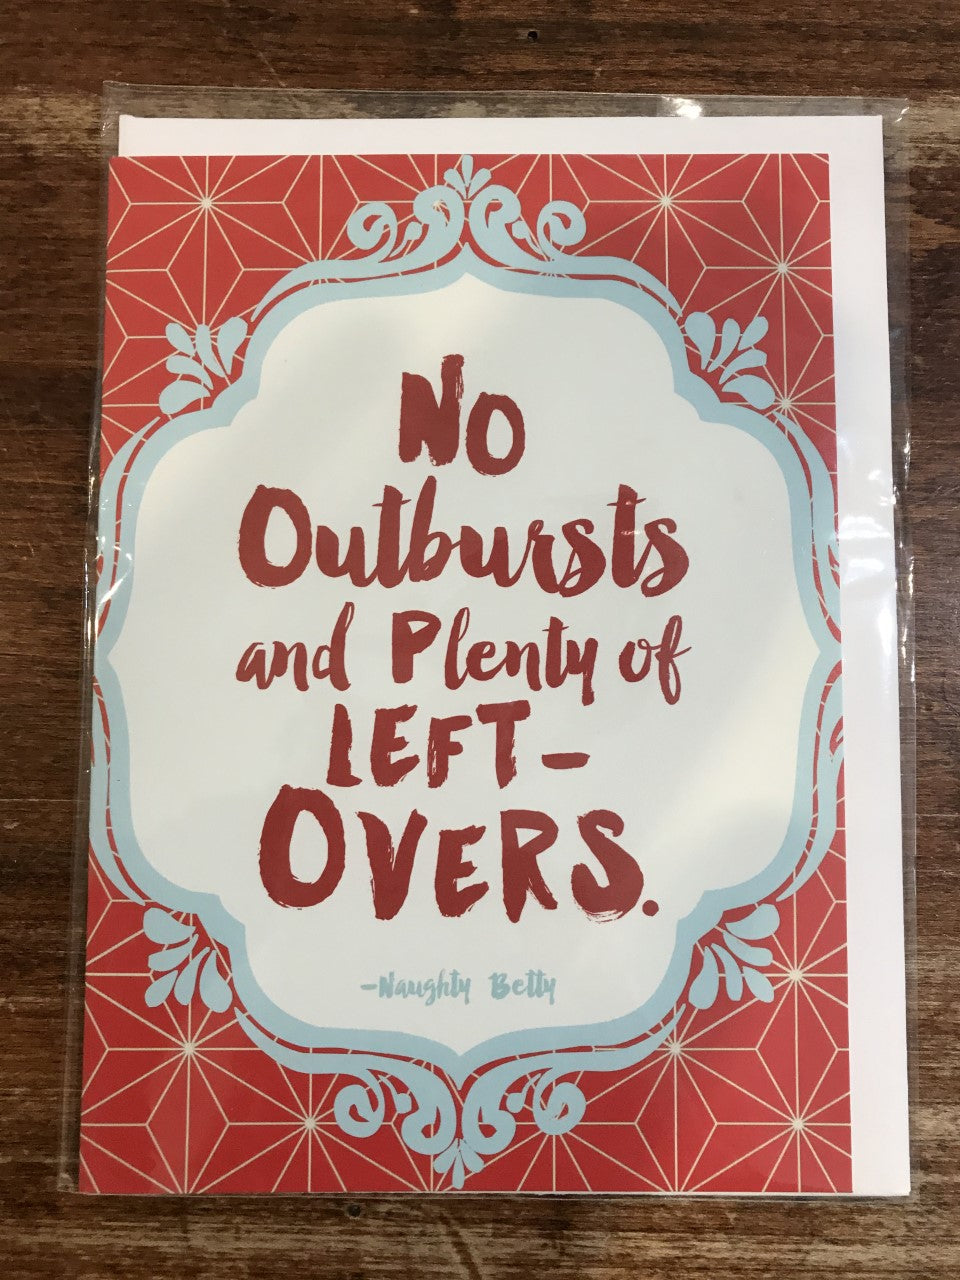 Calypso Holiday Card-No Outbursts